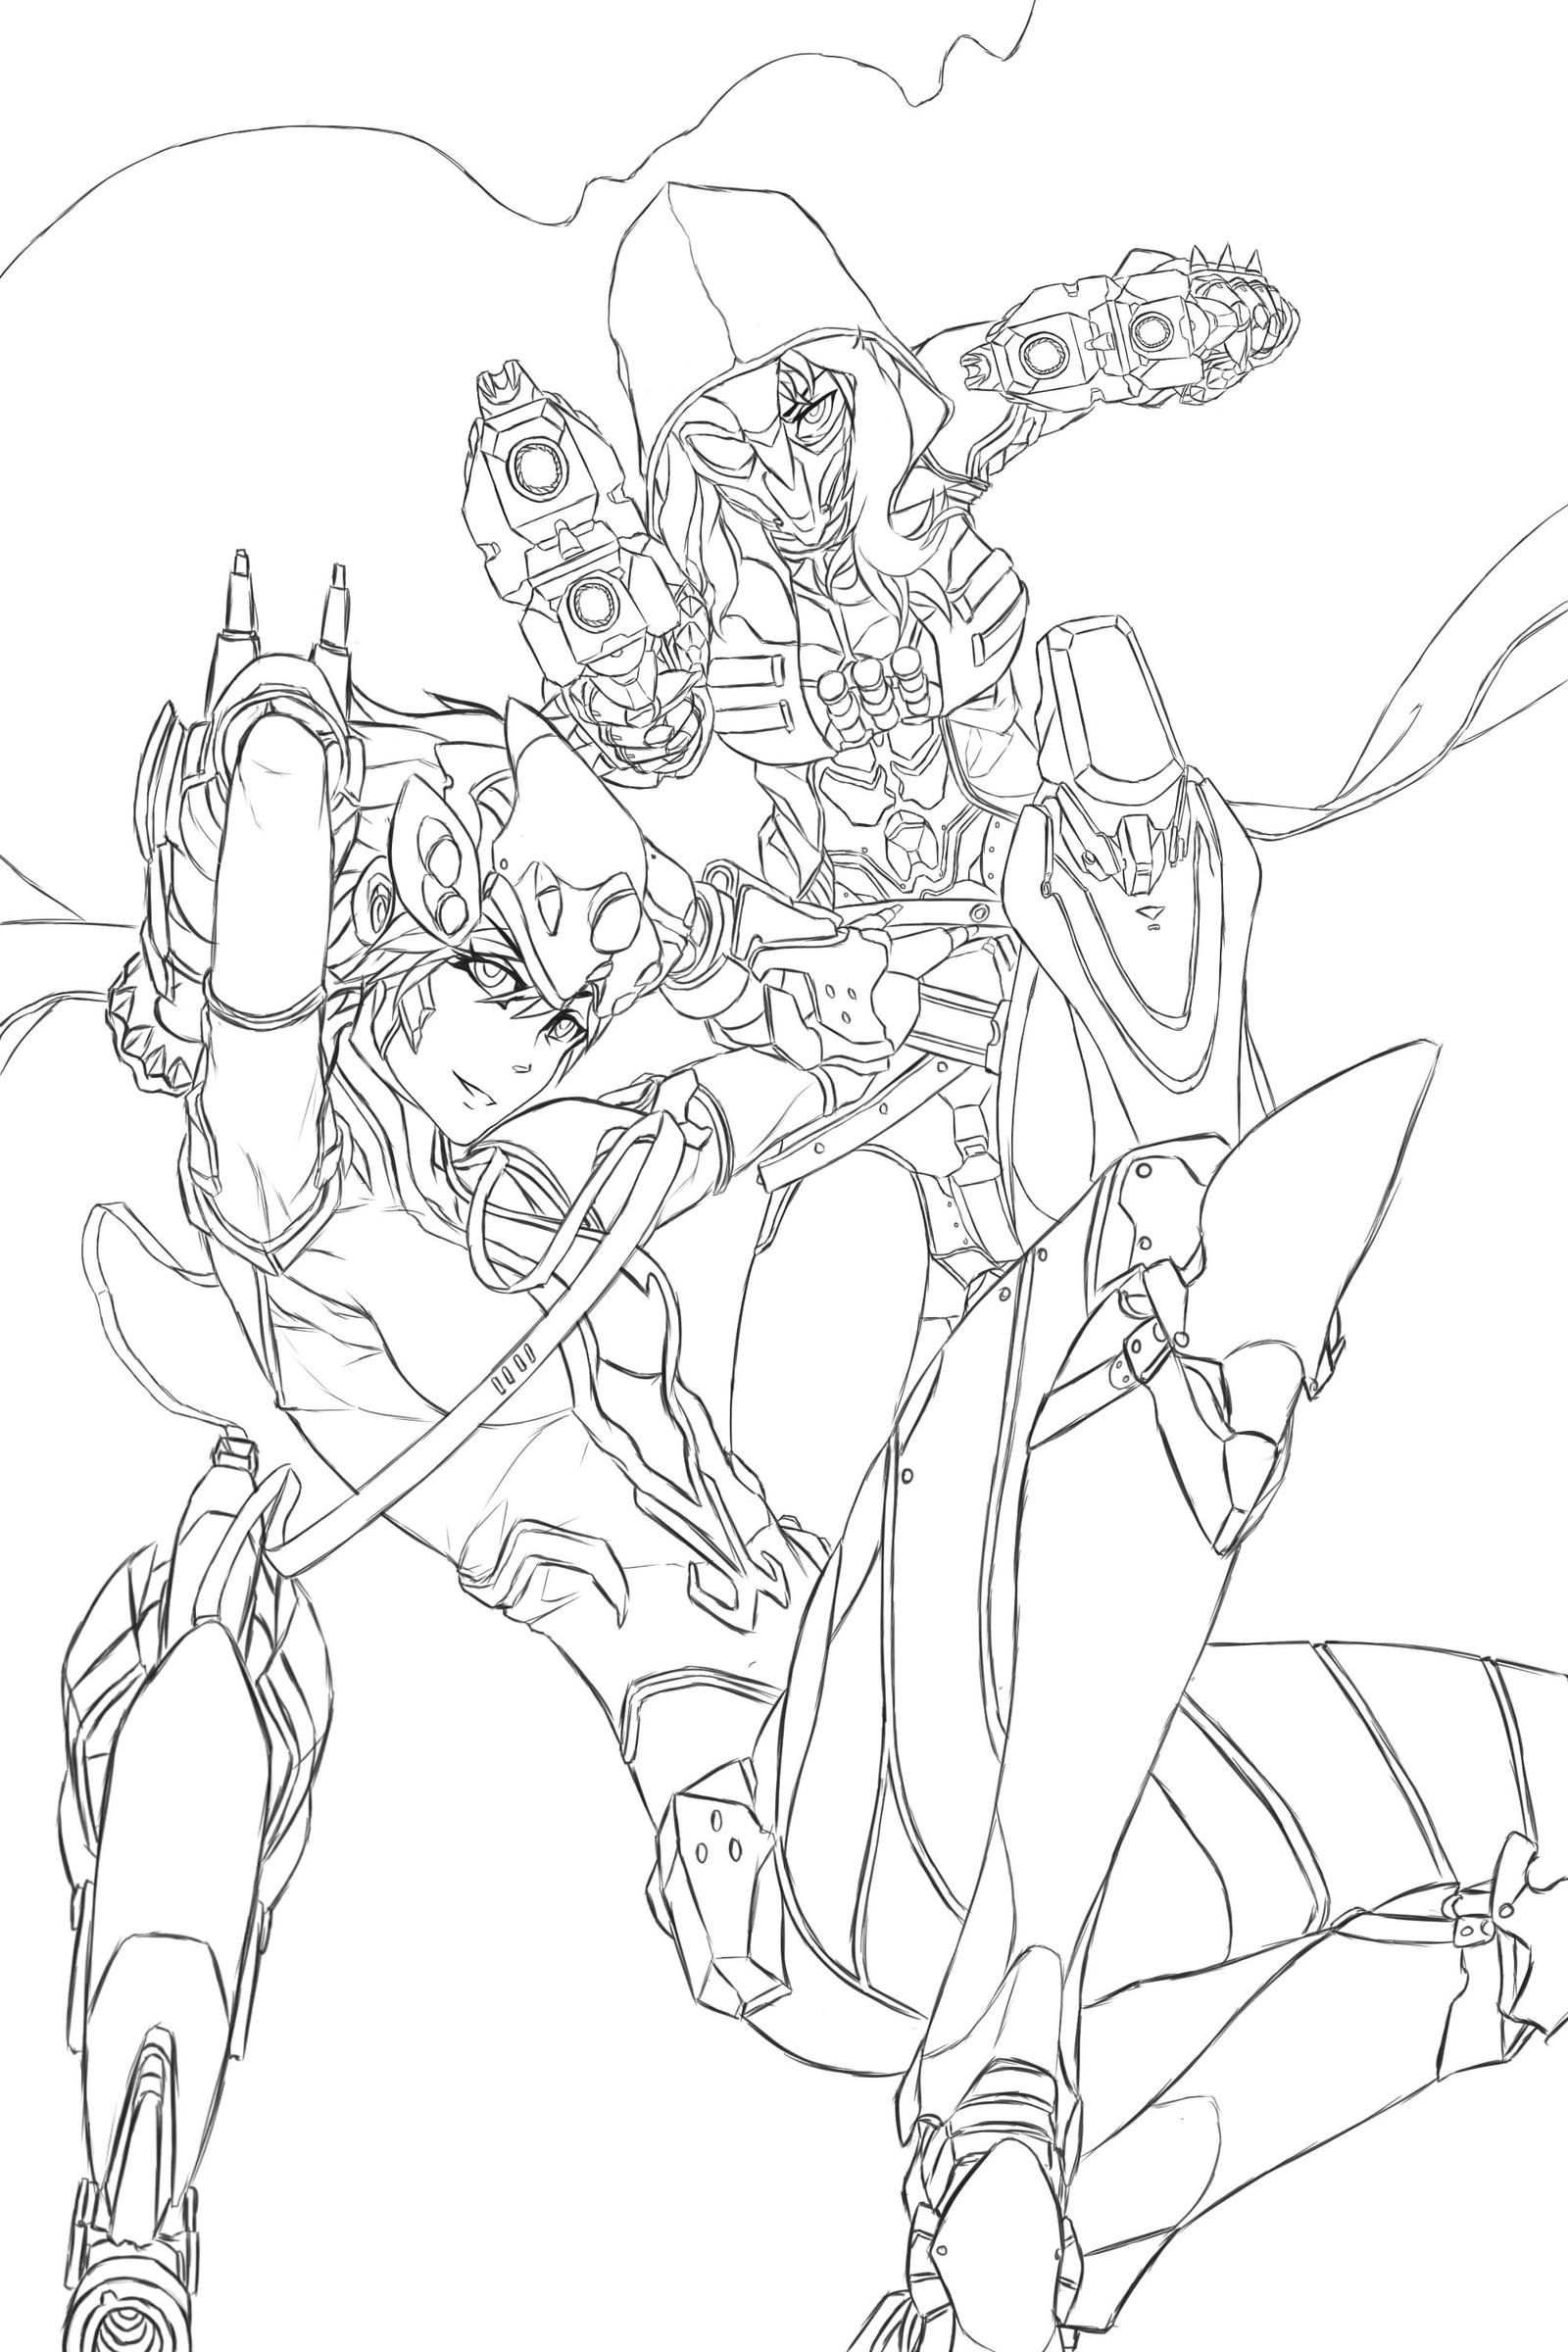 Rwby x overwatch wip by dishwasher1910 on deviantart for Overwatch genji coloring pages